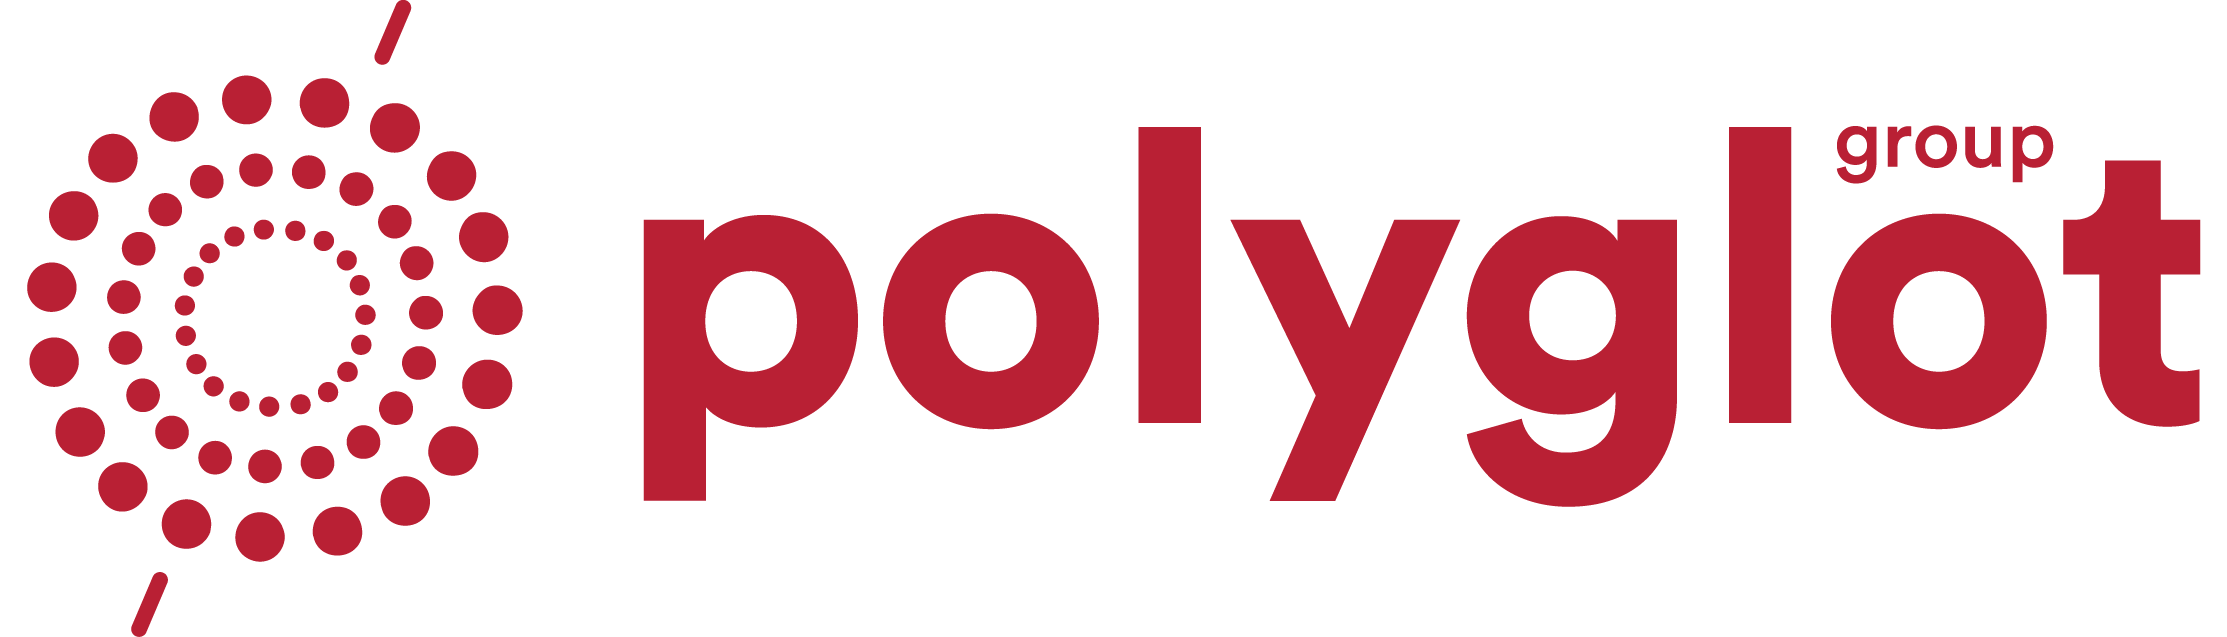 /logos/other/ThePolyglot_Landscape_Standard_Colour-1.png